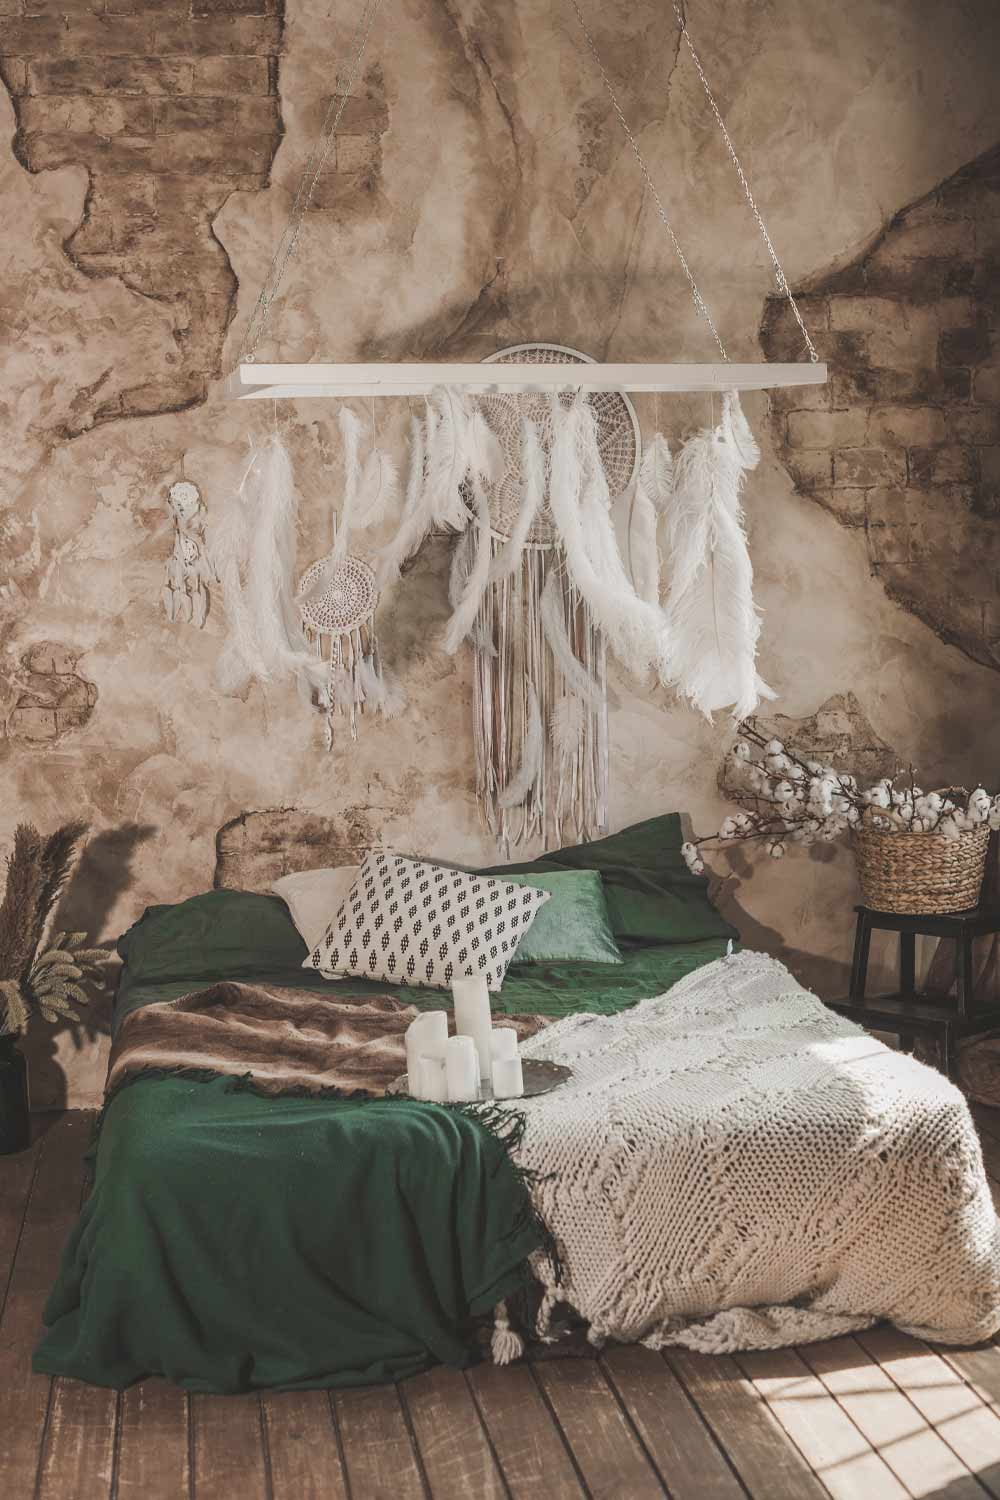 Boho Bedroom with Dream Catcher